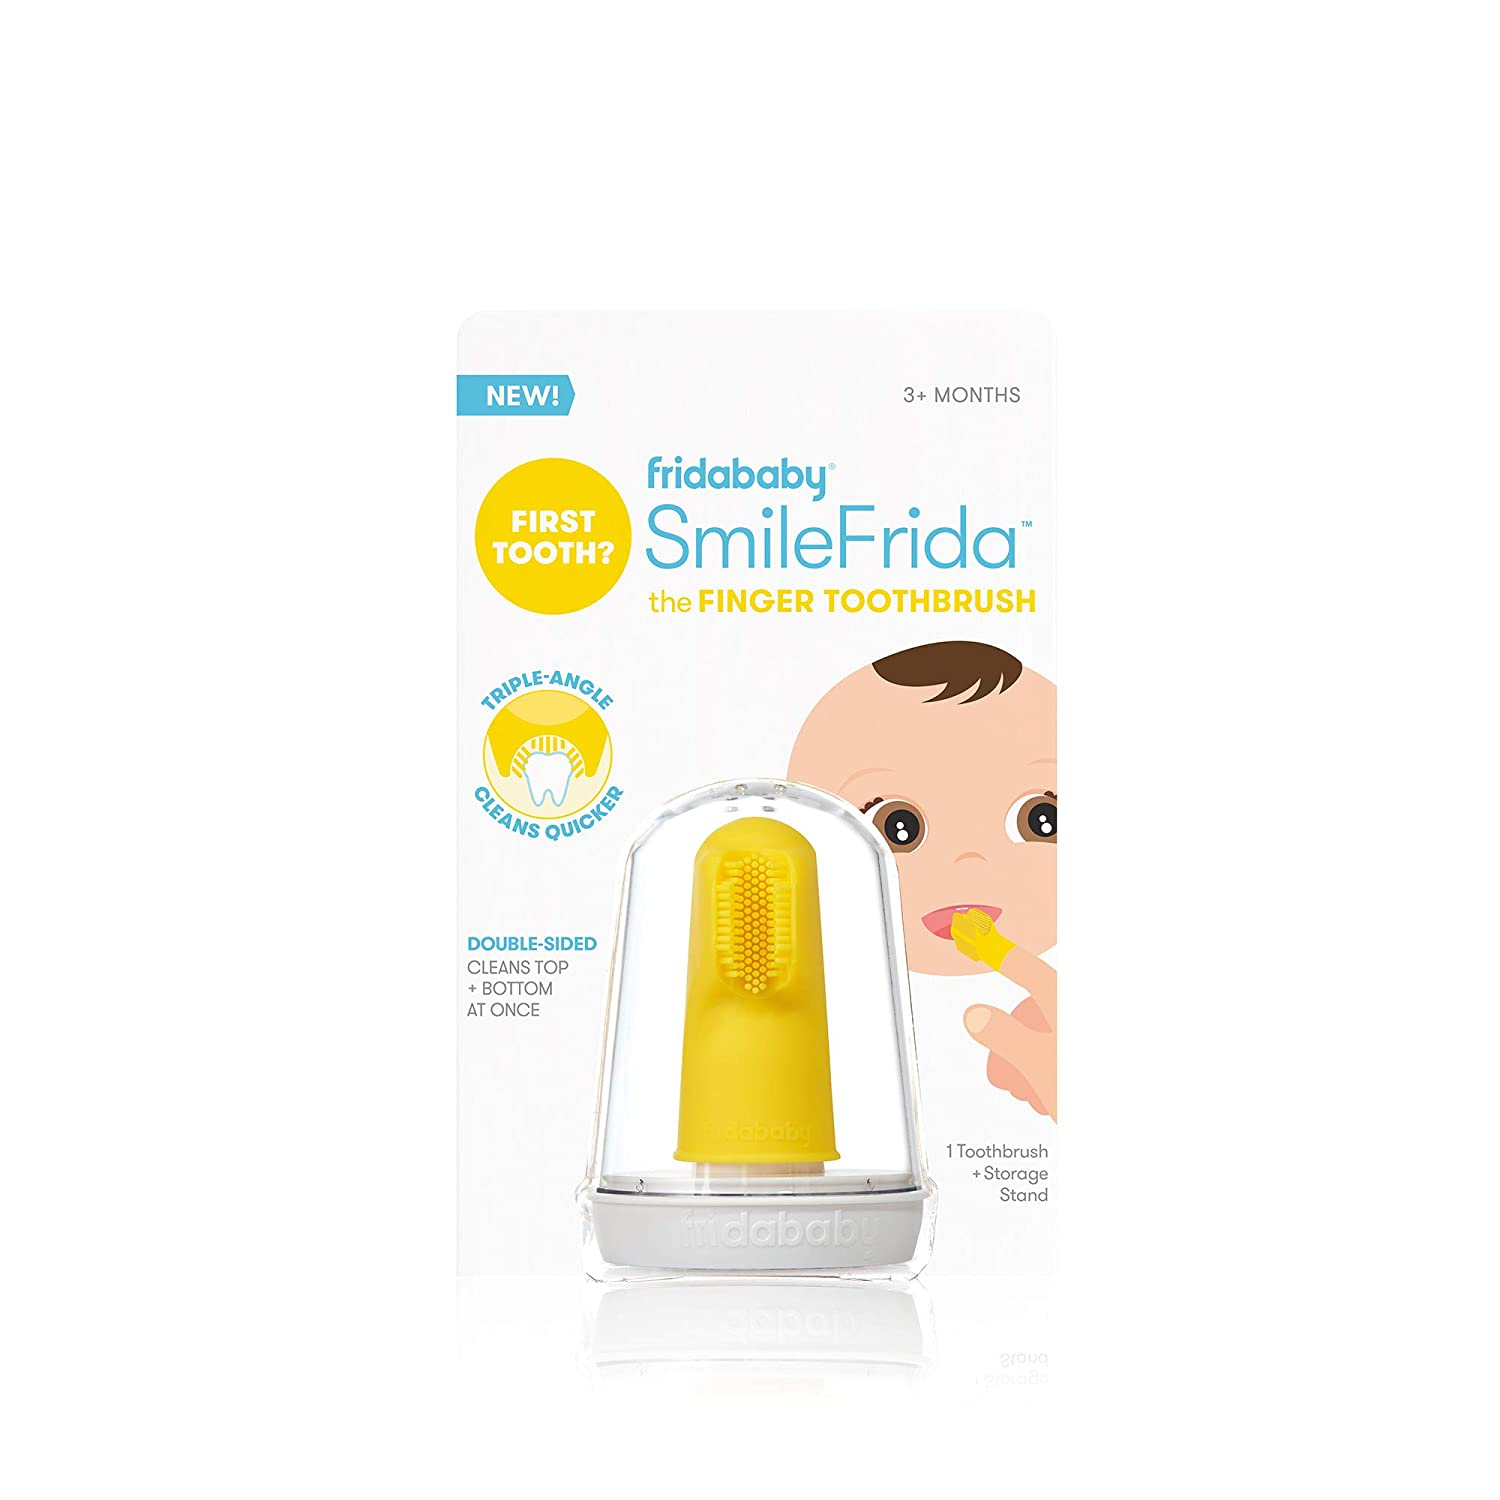 Baby's First Toothbrush with Case, Silicone, BPA-Free - SmileFrida the Finger Toothbrush by Fridababy, cleans teeth and gums with double-sided brush for babies 3 months and up